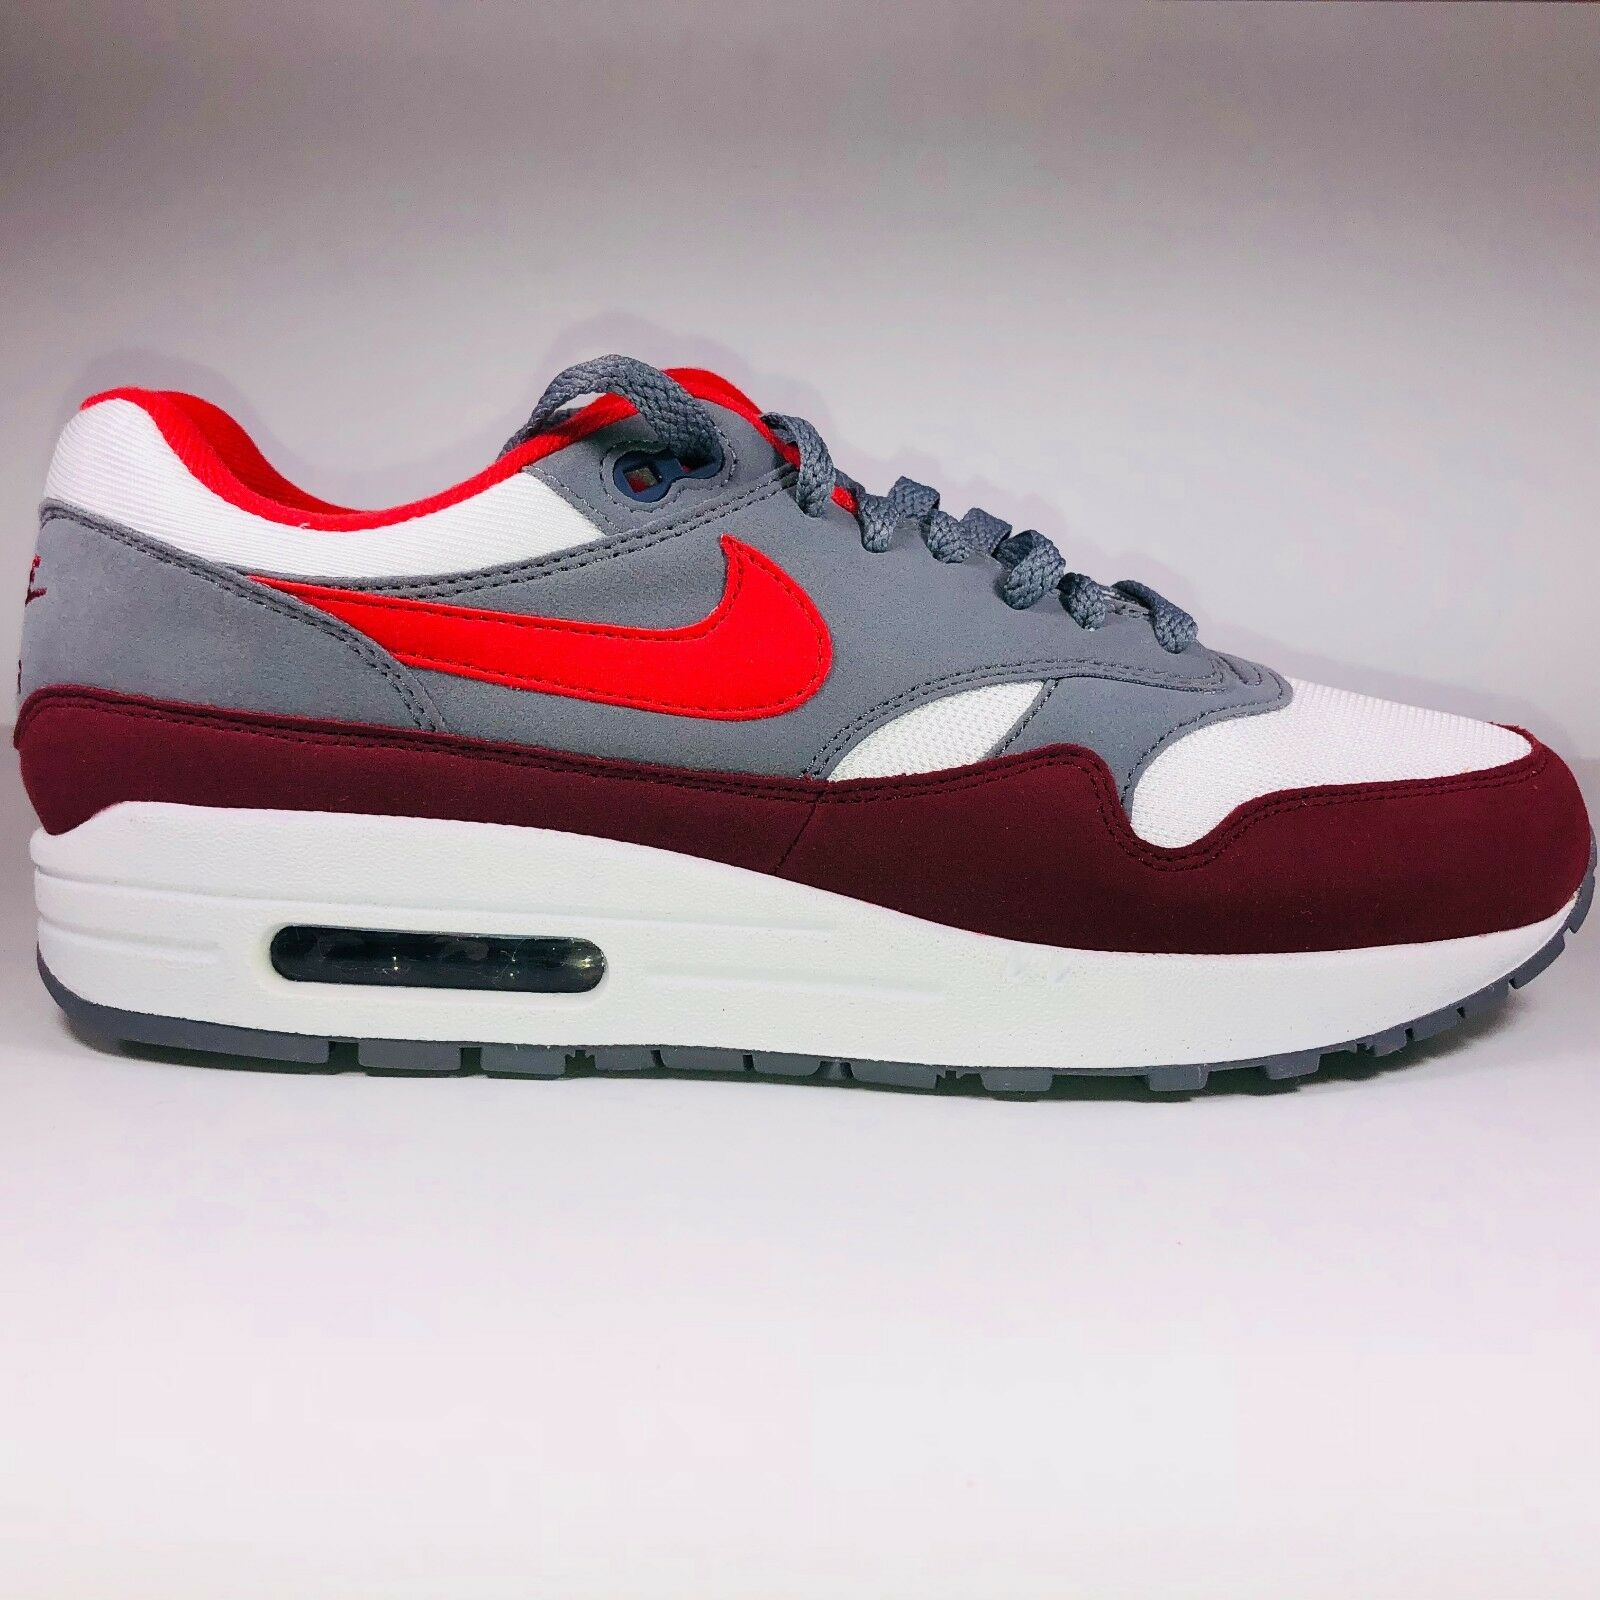 Nike Air Max 1 White Red Cool Grey Athletic Running Sneakers AH8145-100 Size 8.5